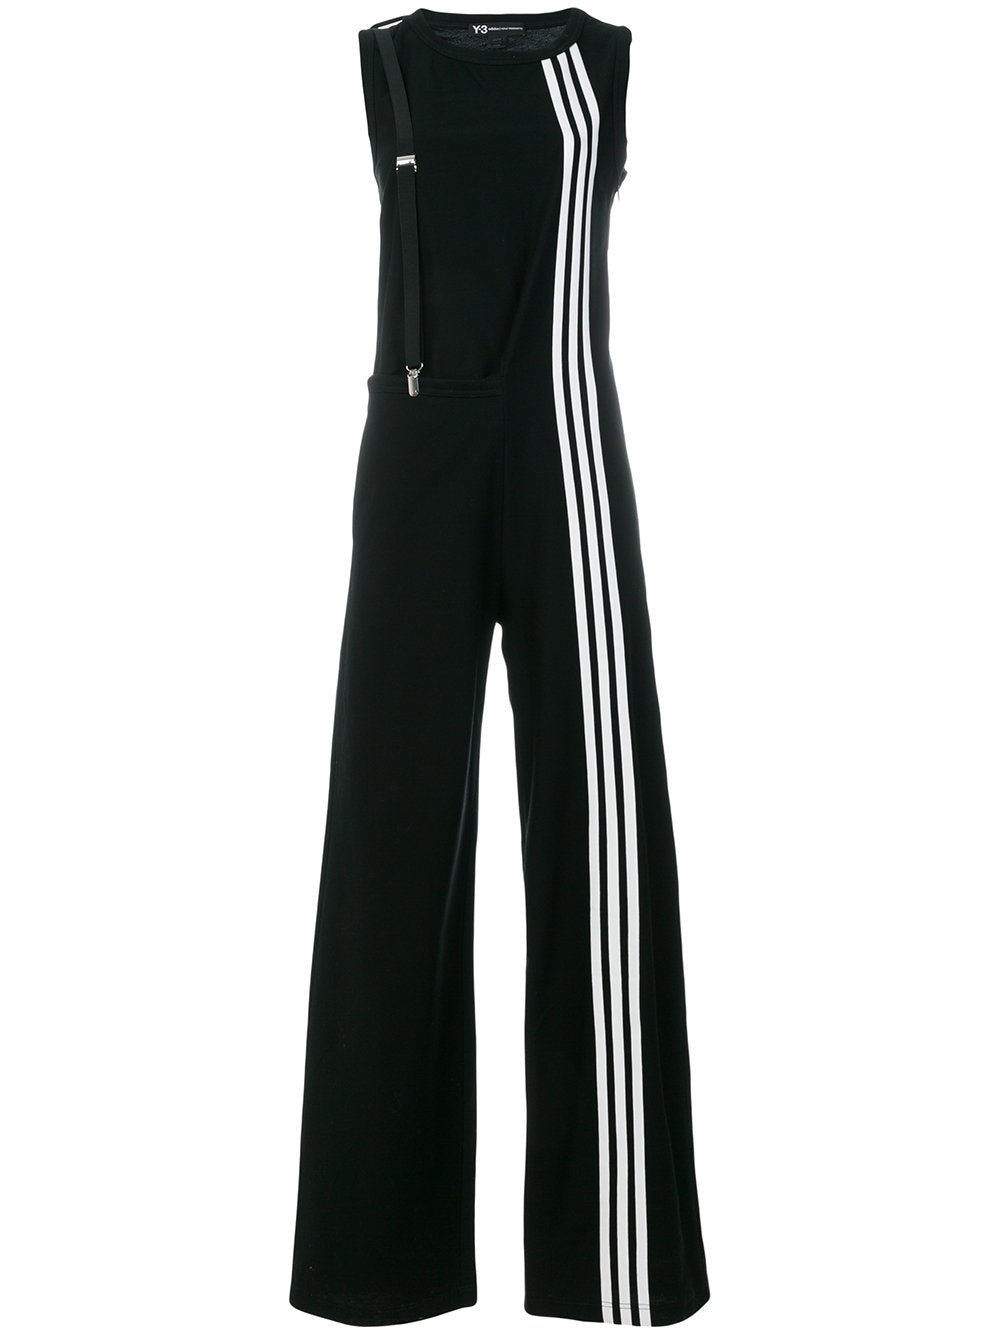 Y-3 3-Stripes Jumpsuit